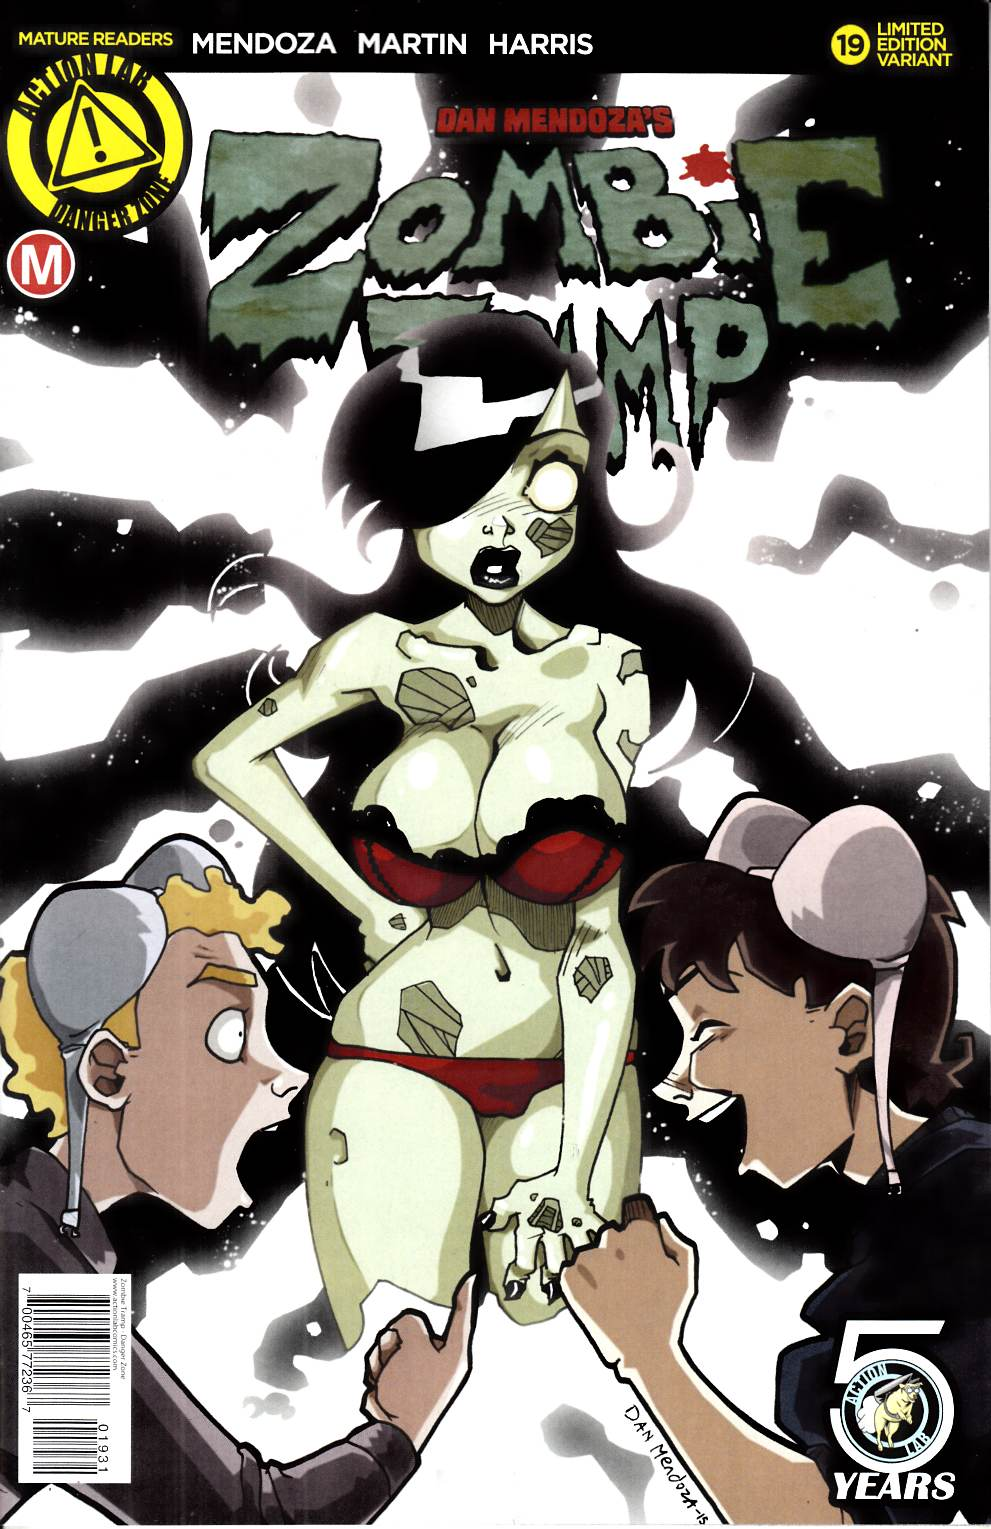 Zombie Tramp Ongoing #19 Mendoza Variant Cover [Danger Zone Comic]